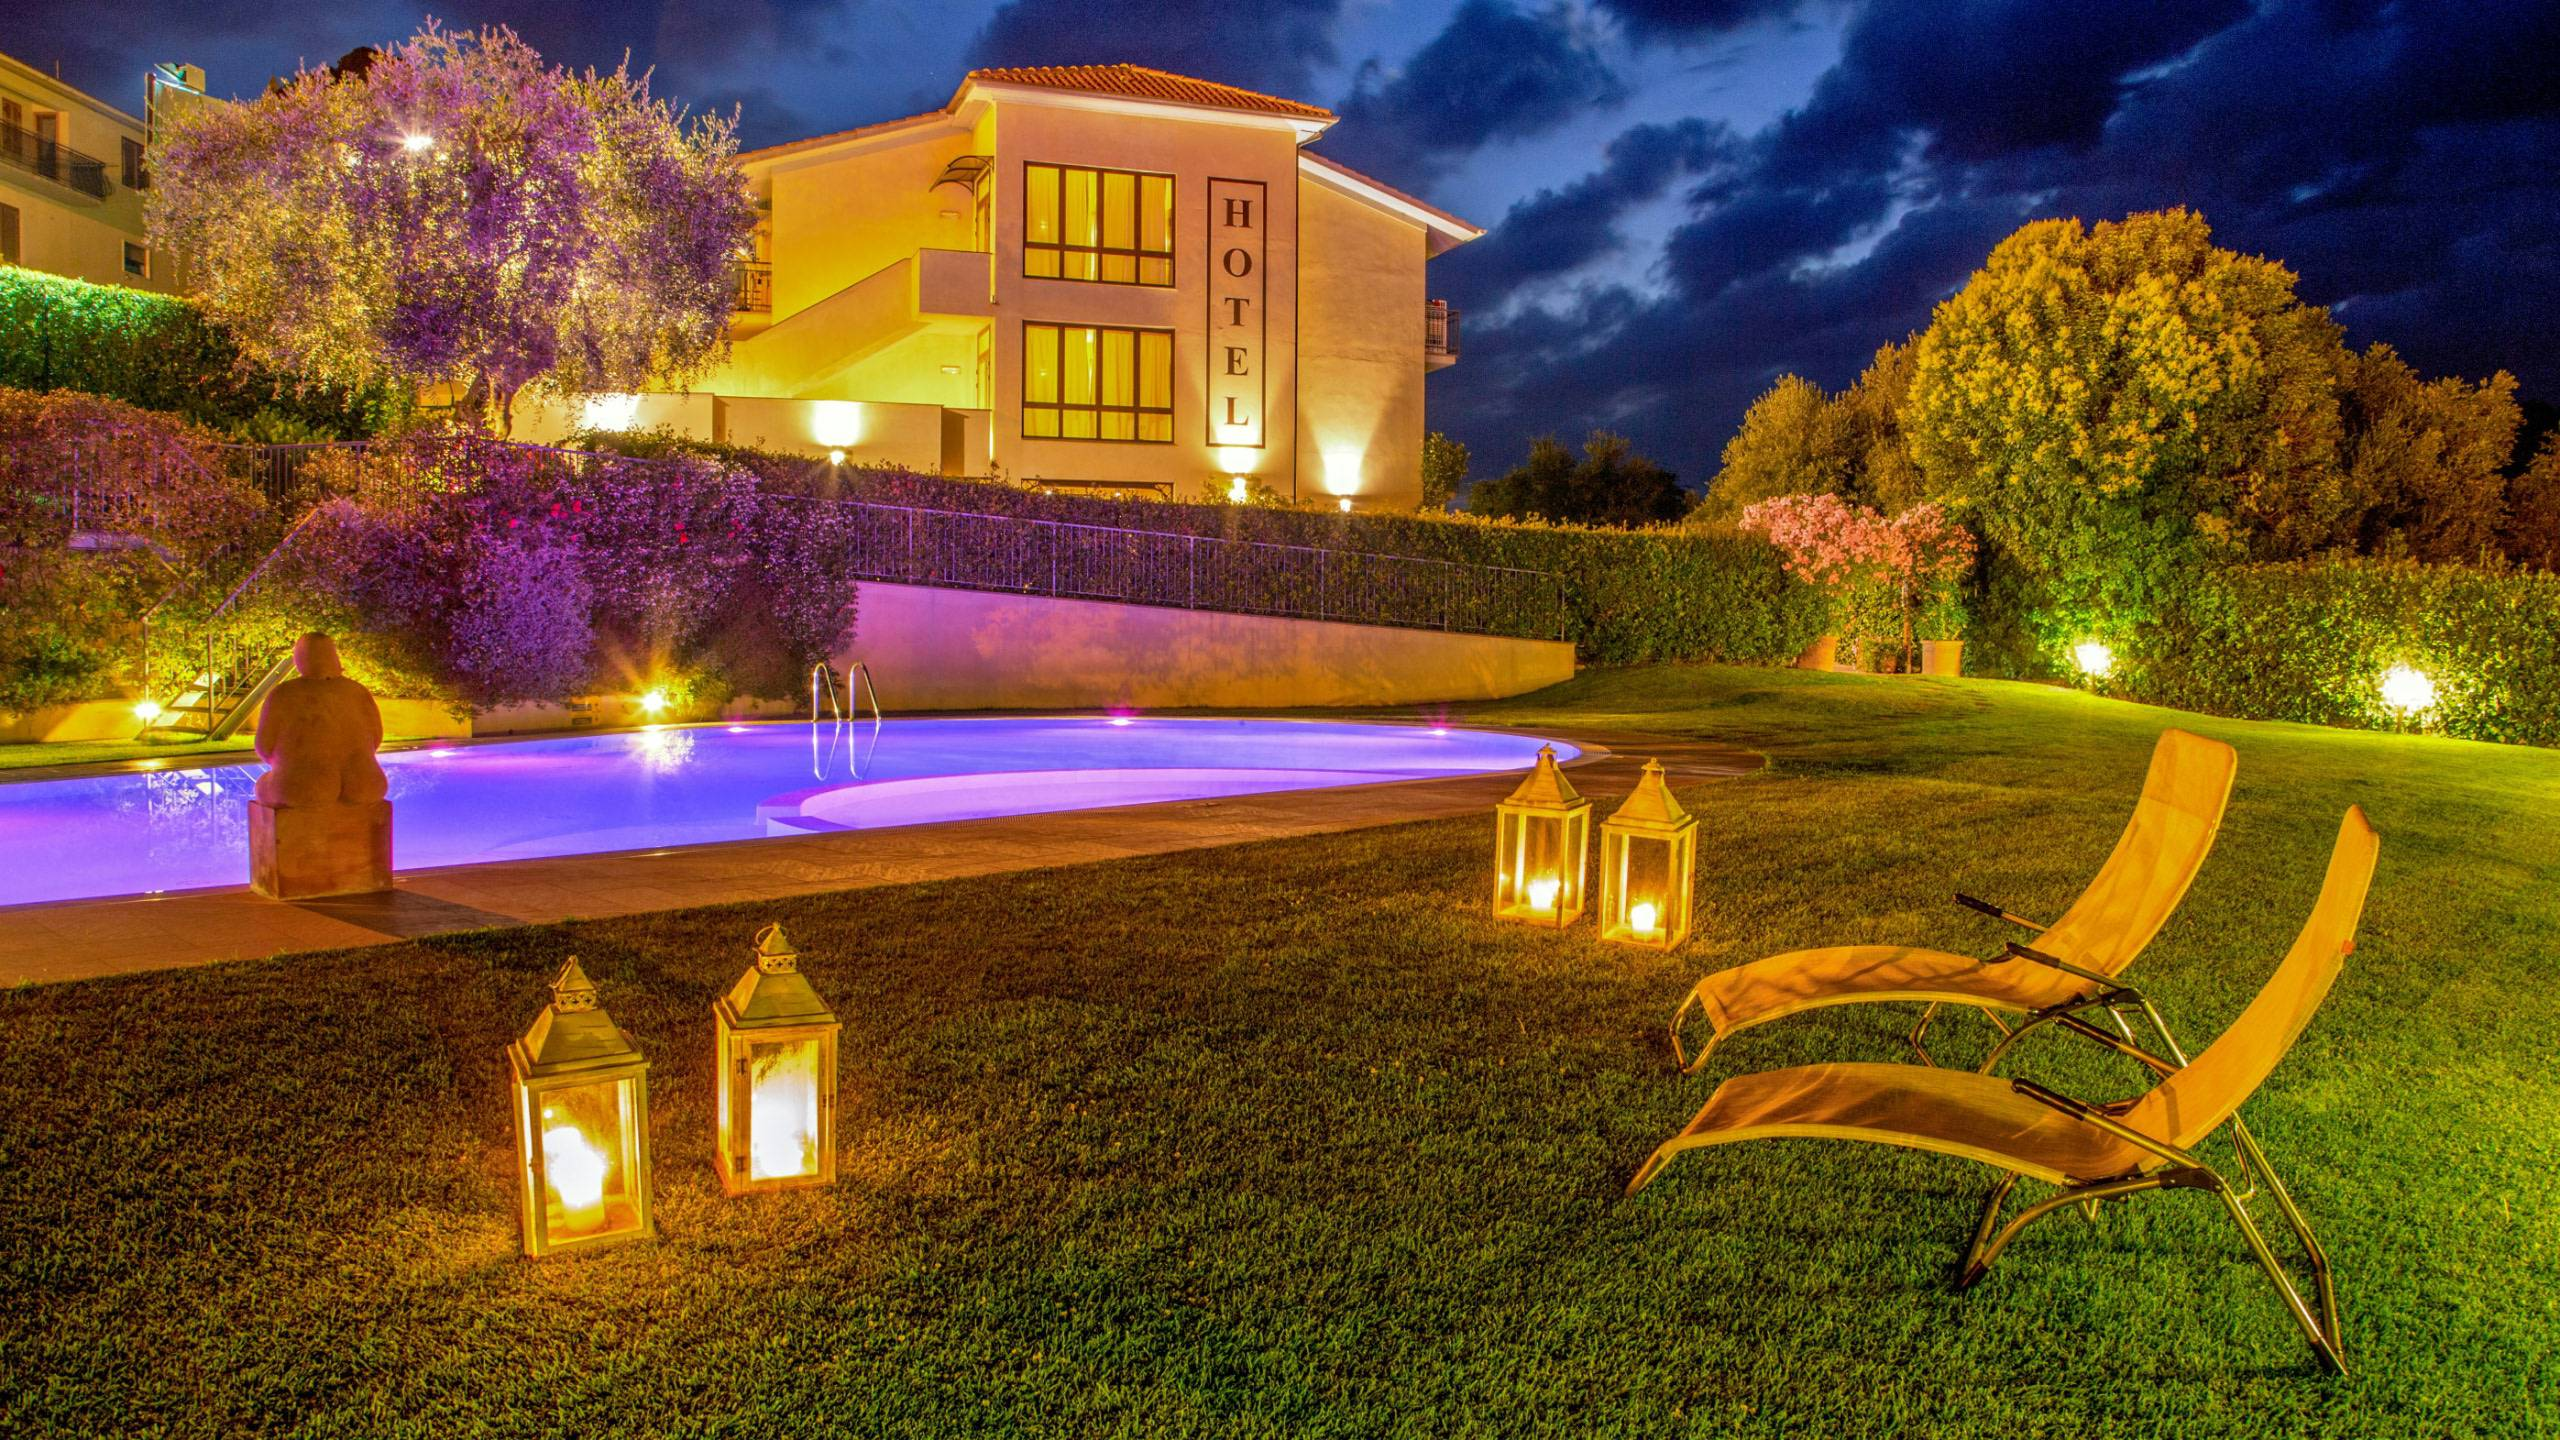 Hotel-Residence-Valle-del-Buttero-Capalbio-pool-823